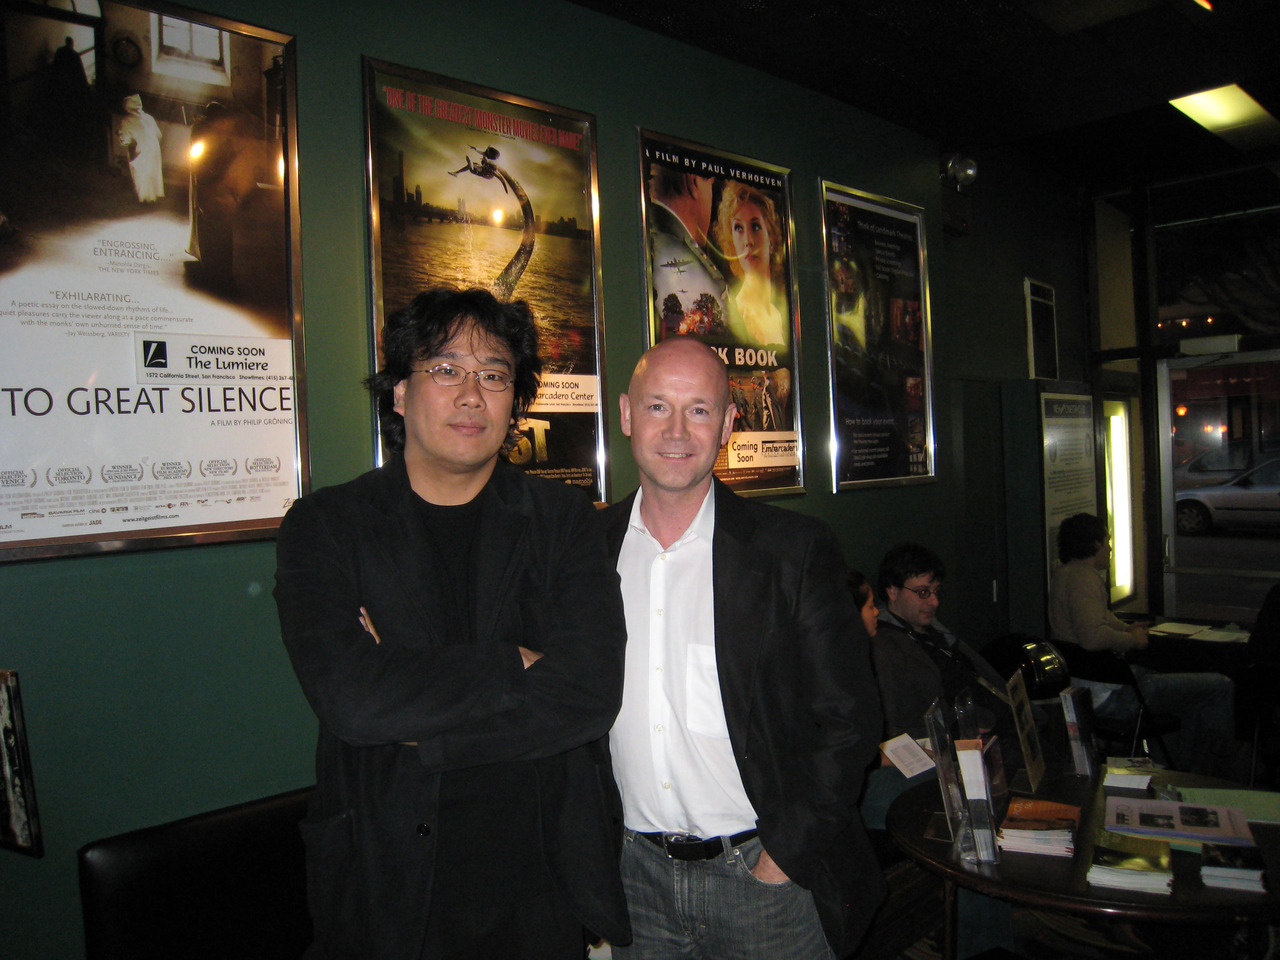 Happy Birthday, Bong Joon-Ho! Seen here with former ED Graham Leggat in 2007 at the Clay Theater, in between screenings of his films Memories of Murder (SFIFF47) and Barking Dogs Never Bite. Photo by Cindy Lang